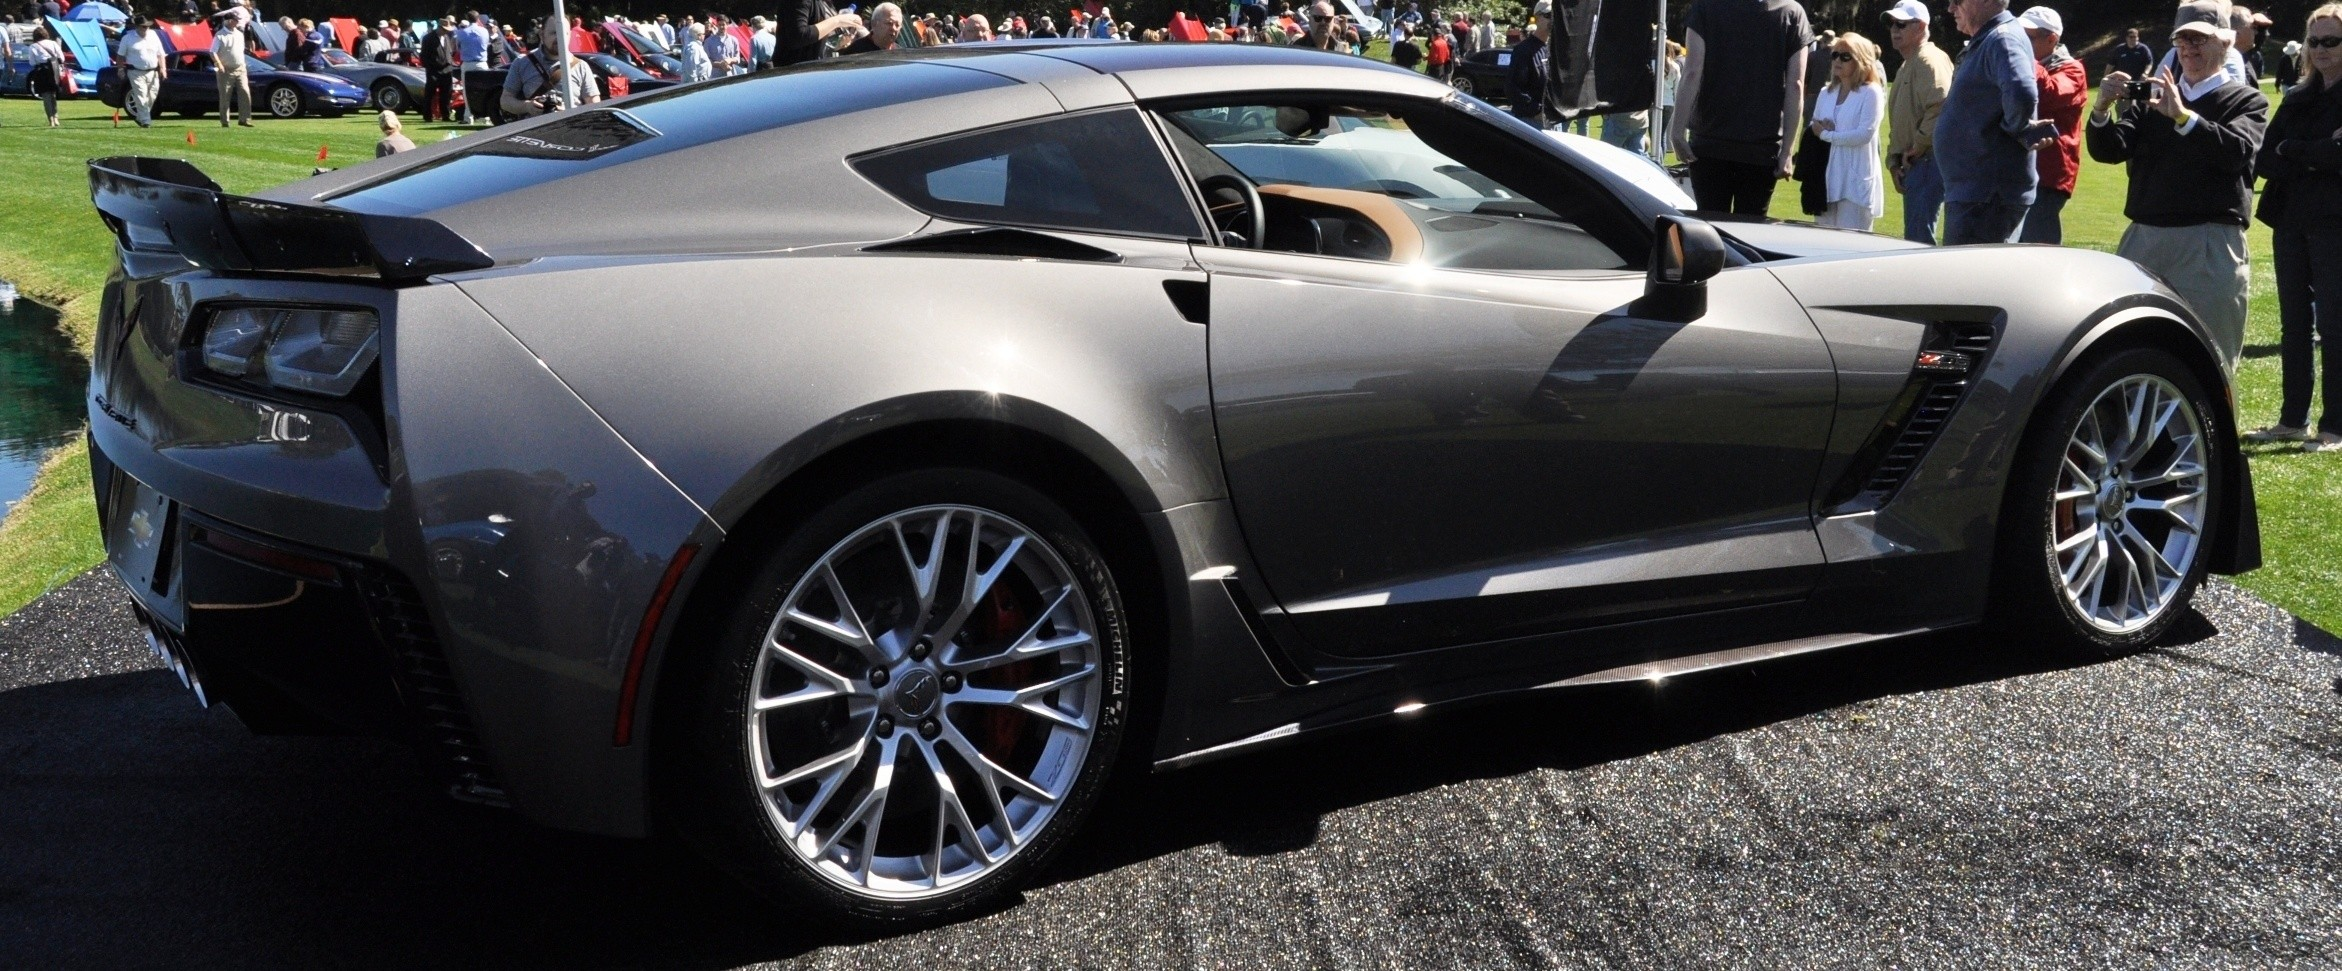 2015 Z06 -- First Outdoor Showing -- Forthcoming Chevrolet Corvette Track Monster Holds Still For 26 High-Res Photos 13